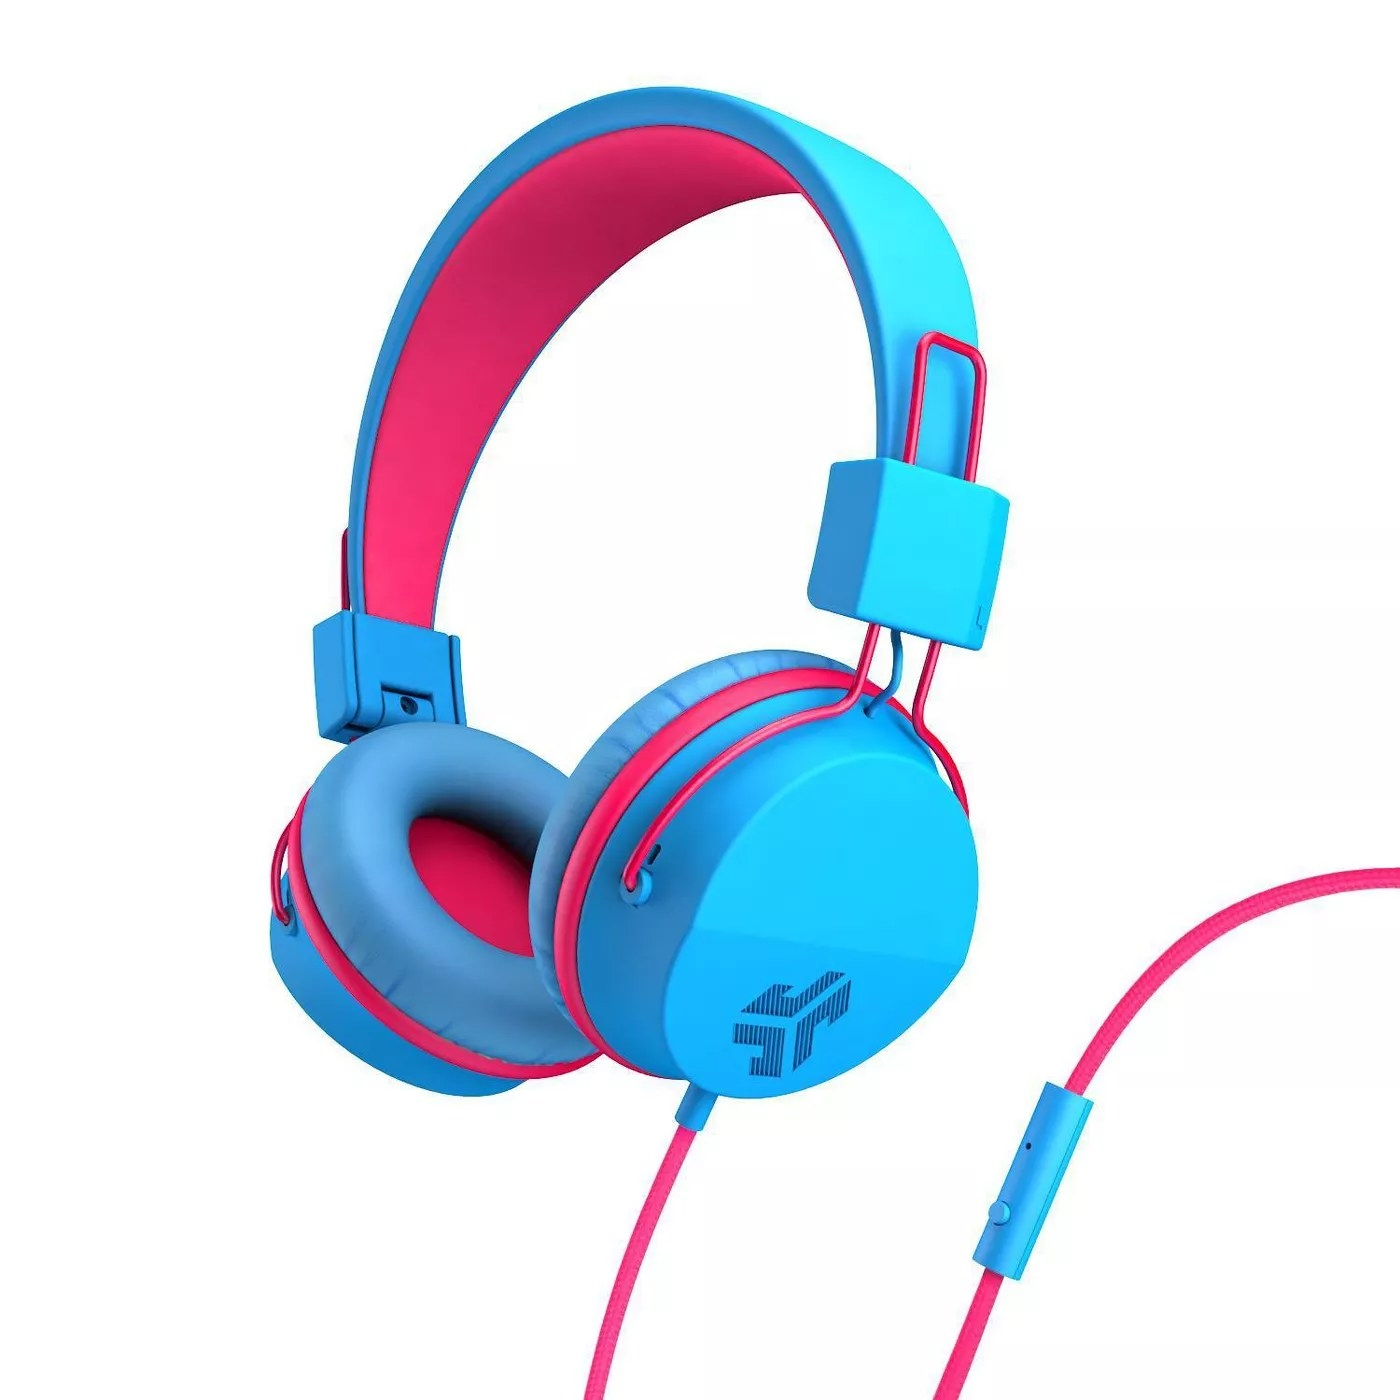 A blue and pink pair of headphones with adjustable ears and a mic on the wire with track control